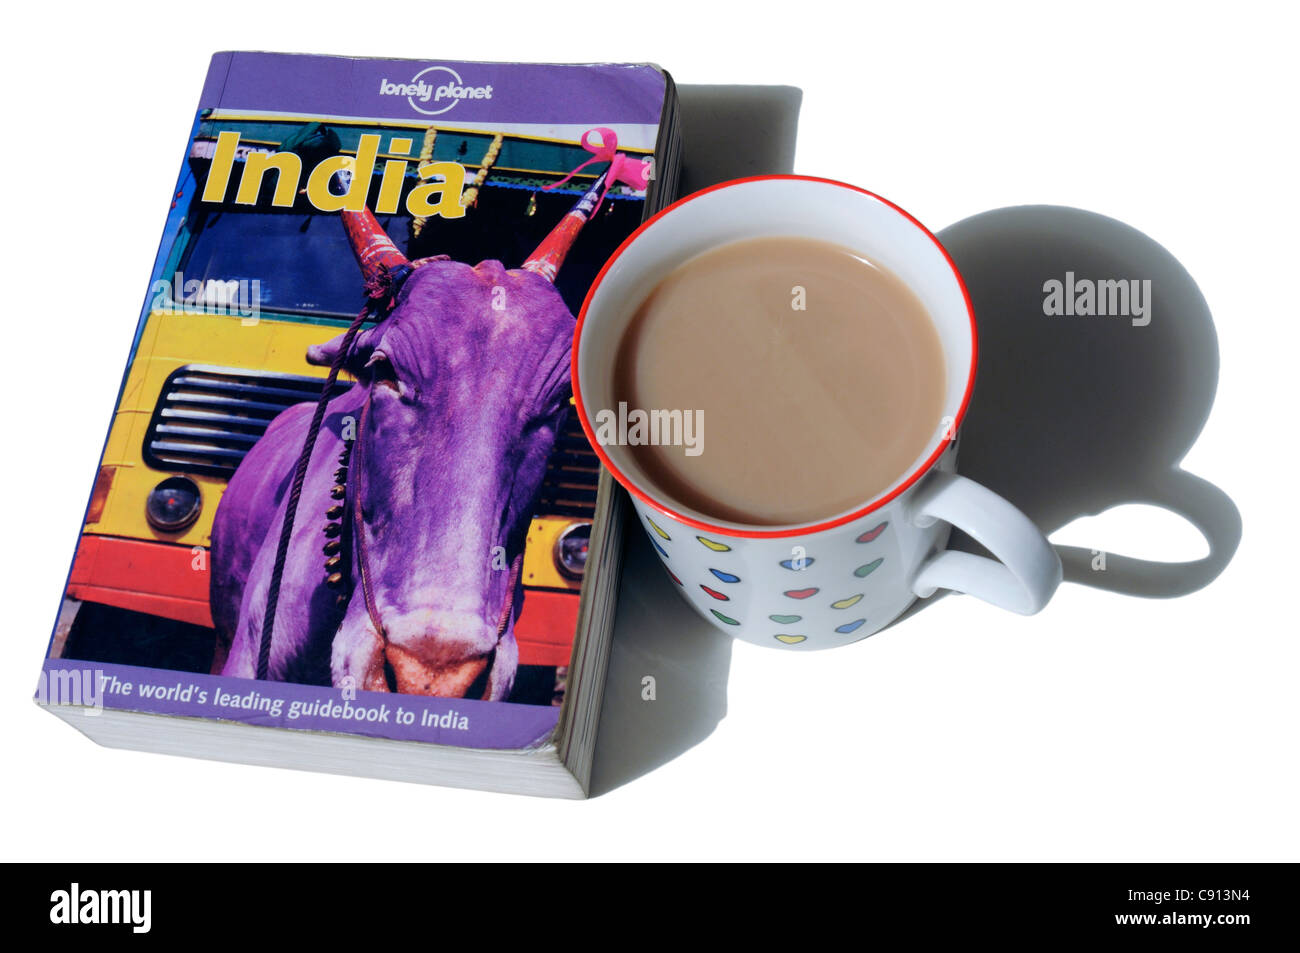 The Lonely Planet Guide to India Stock Photo